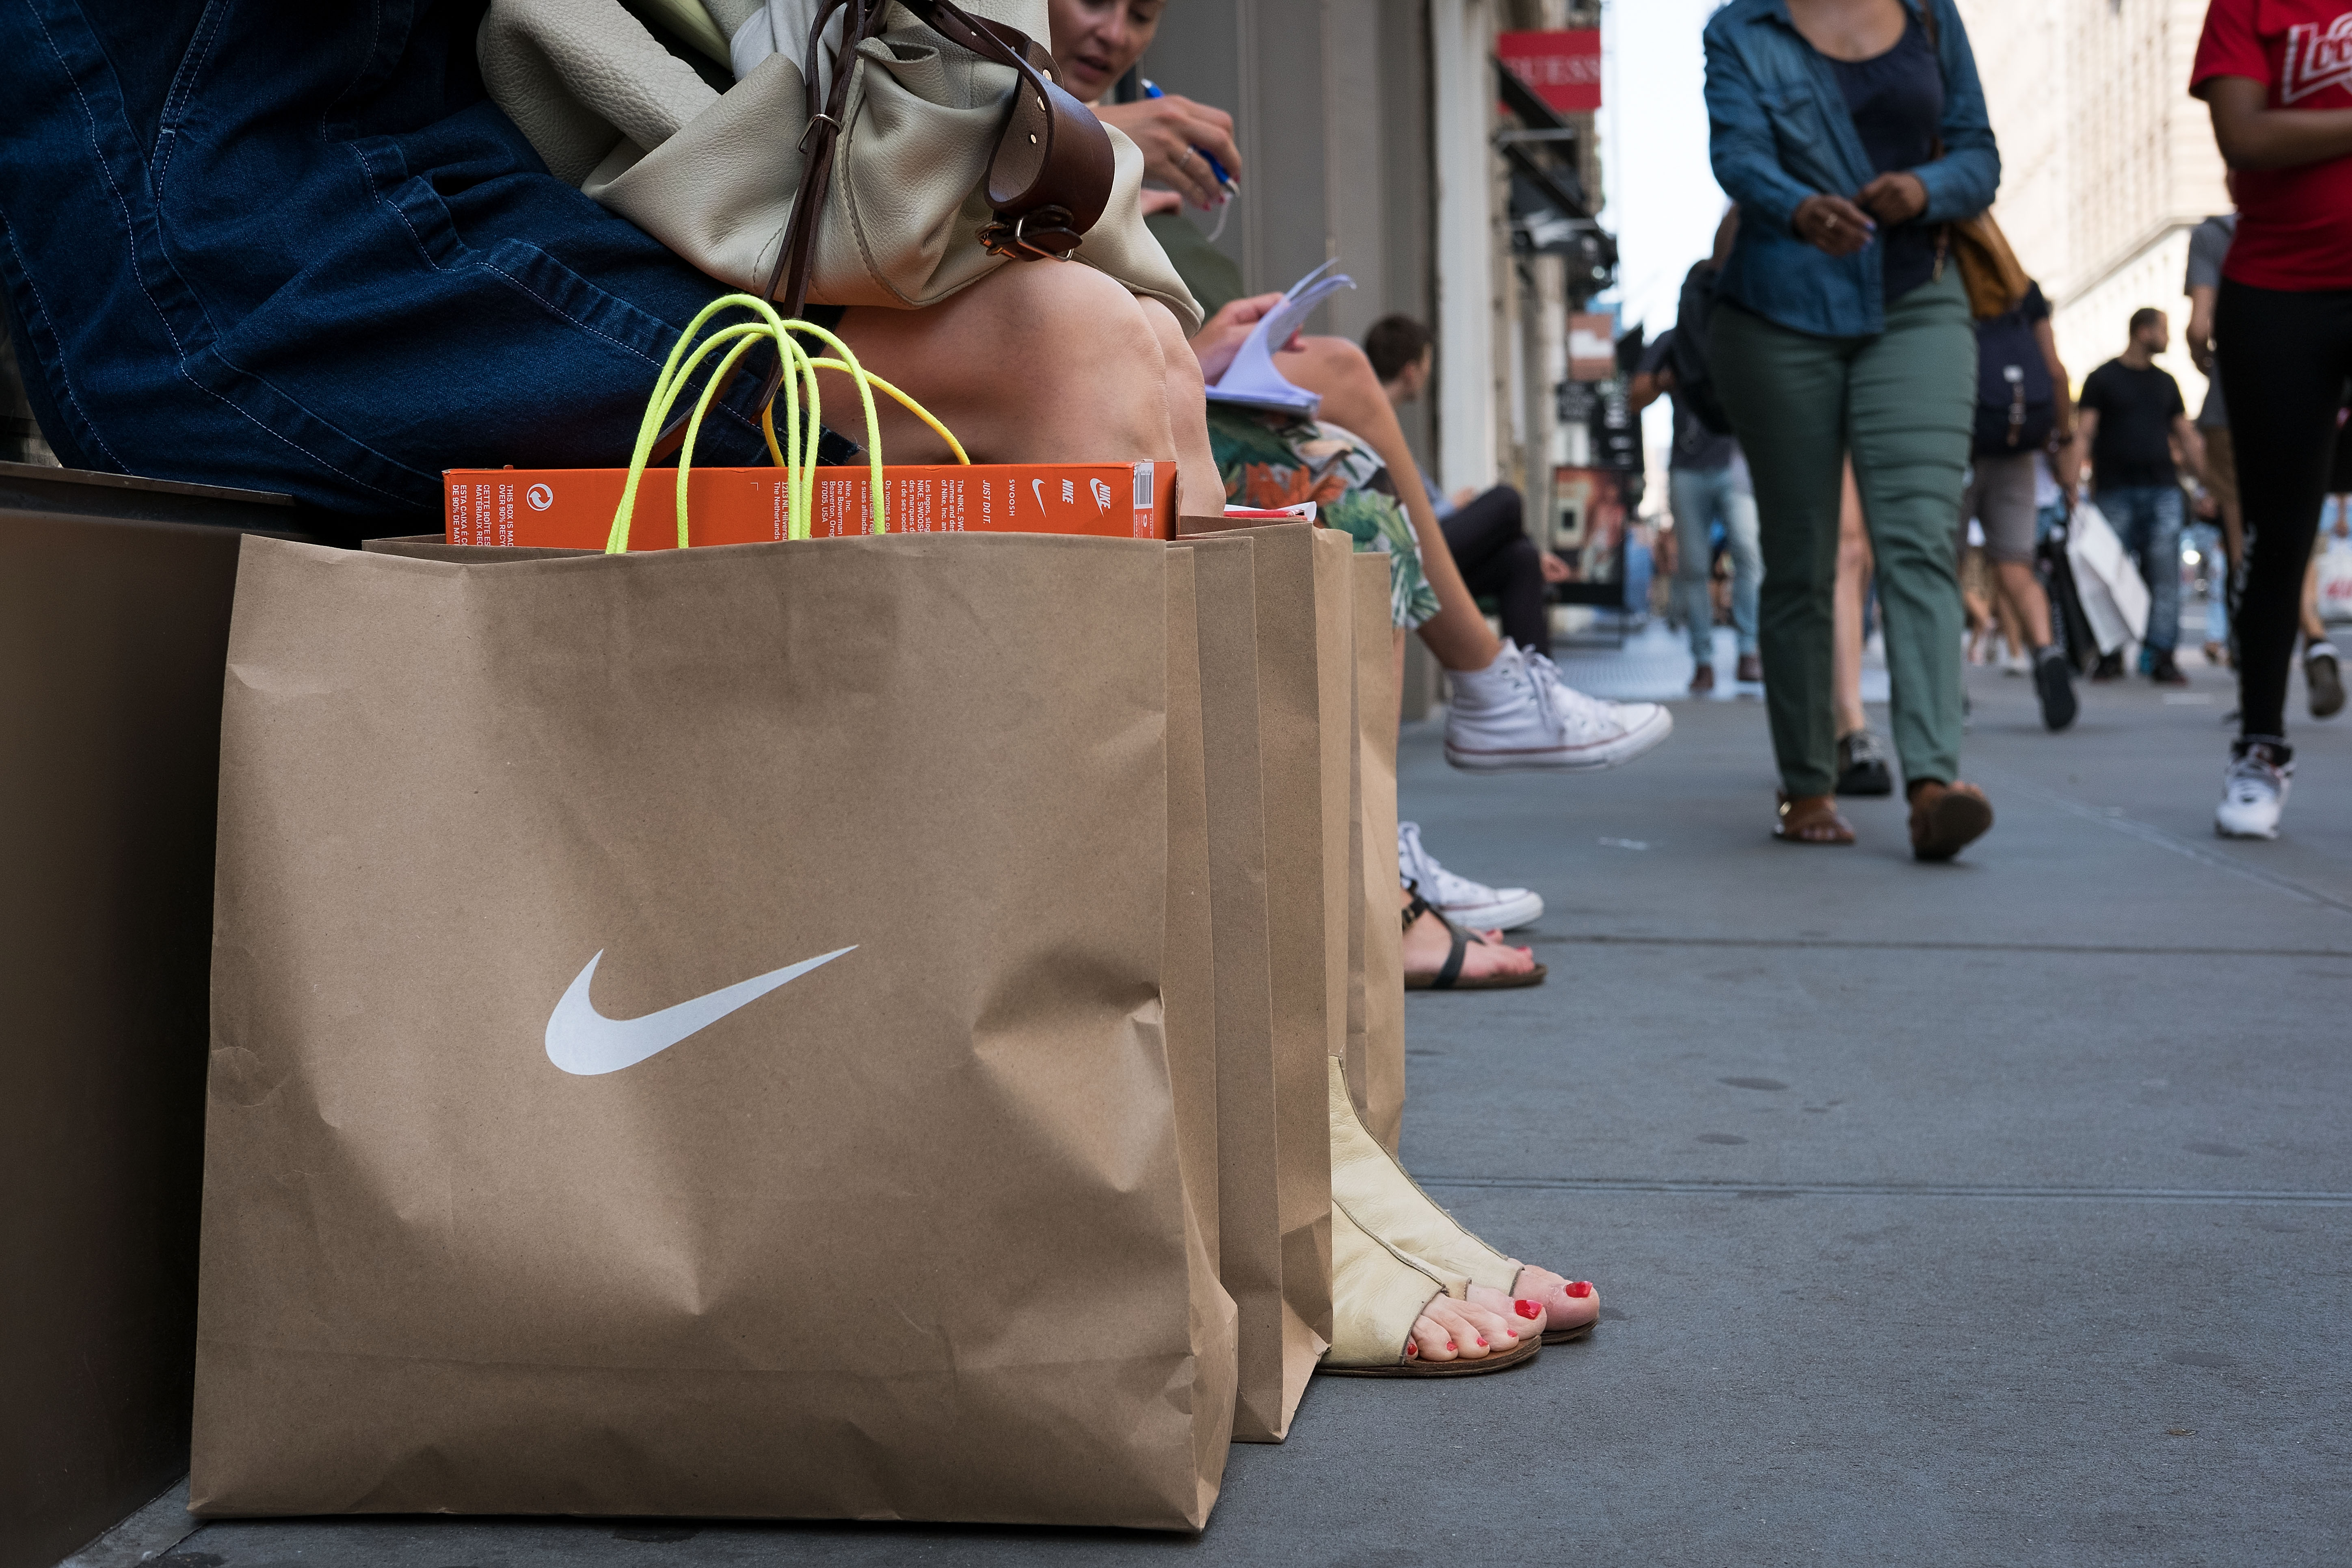 A shopper sits next to Nike shopping bags outside the Nike SoHo store, June 15, 2017, in New York City (Getty Images)